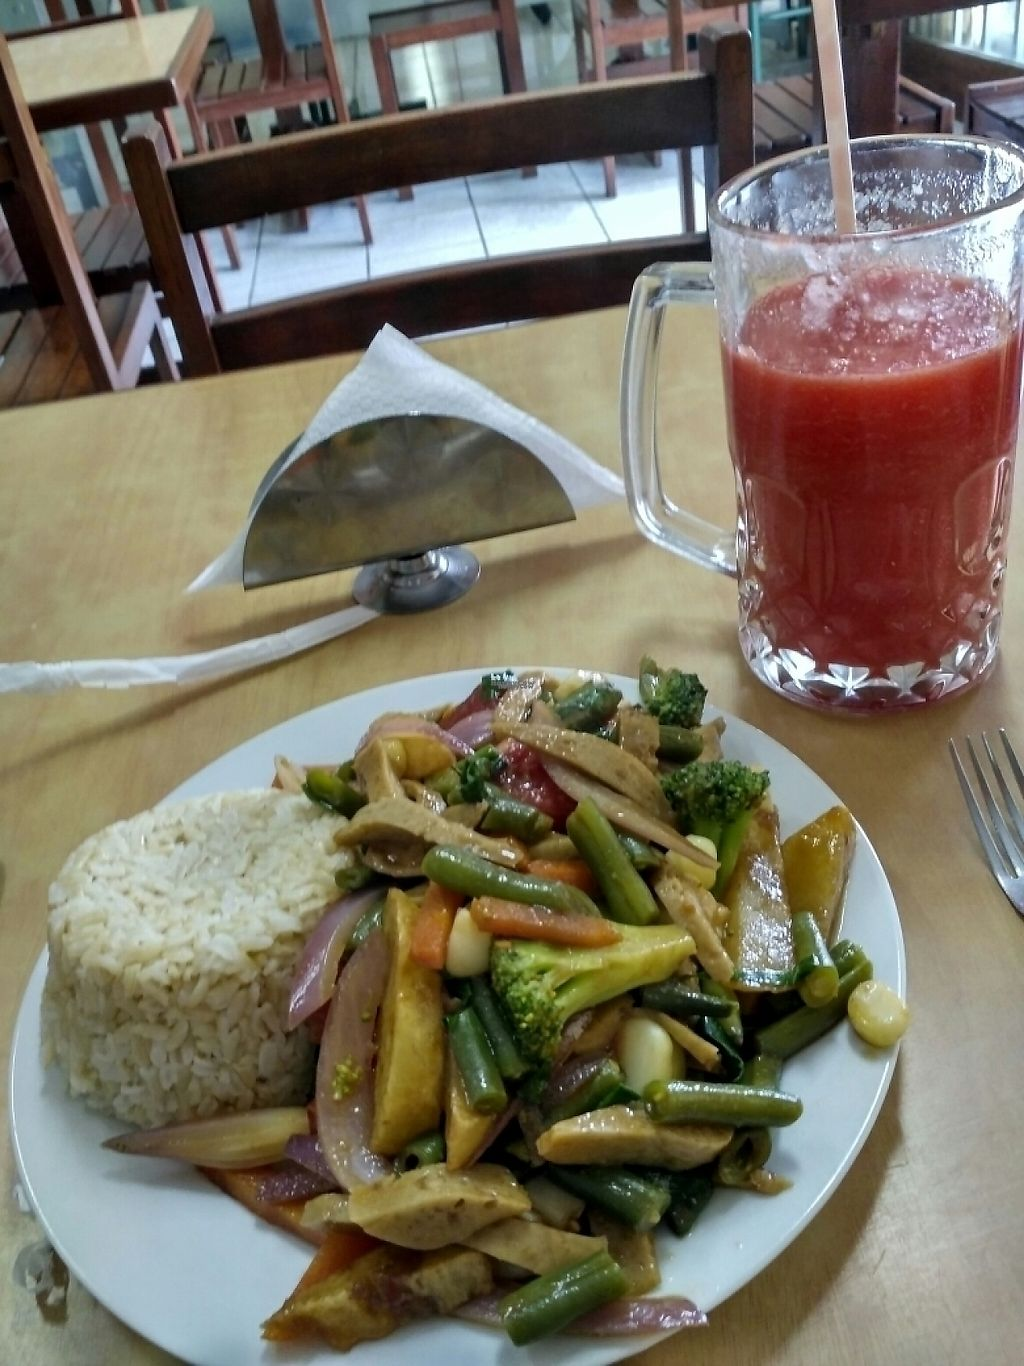 """Photo of Vida Sana - Jesus Maria  by <a href=""""/members/profile/Niko"""">Niko</a> <br/>food was super delicious <br/> February 7, 2017  - <a href='/contact/abuse/image/19783/224068'>Report</a>"""